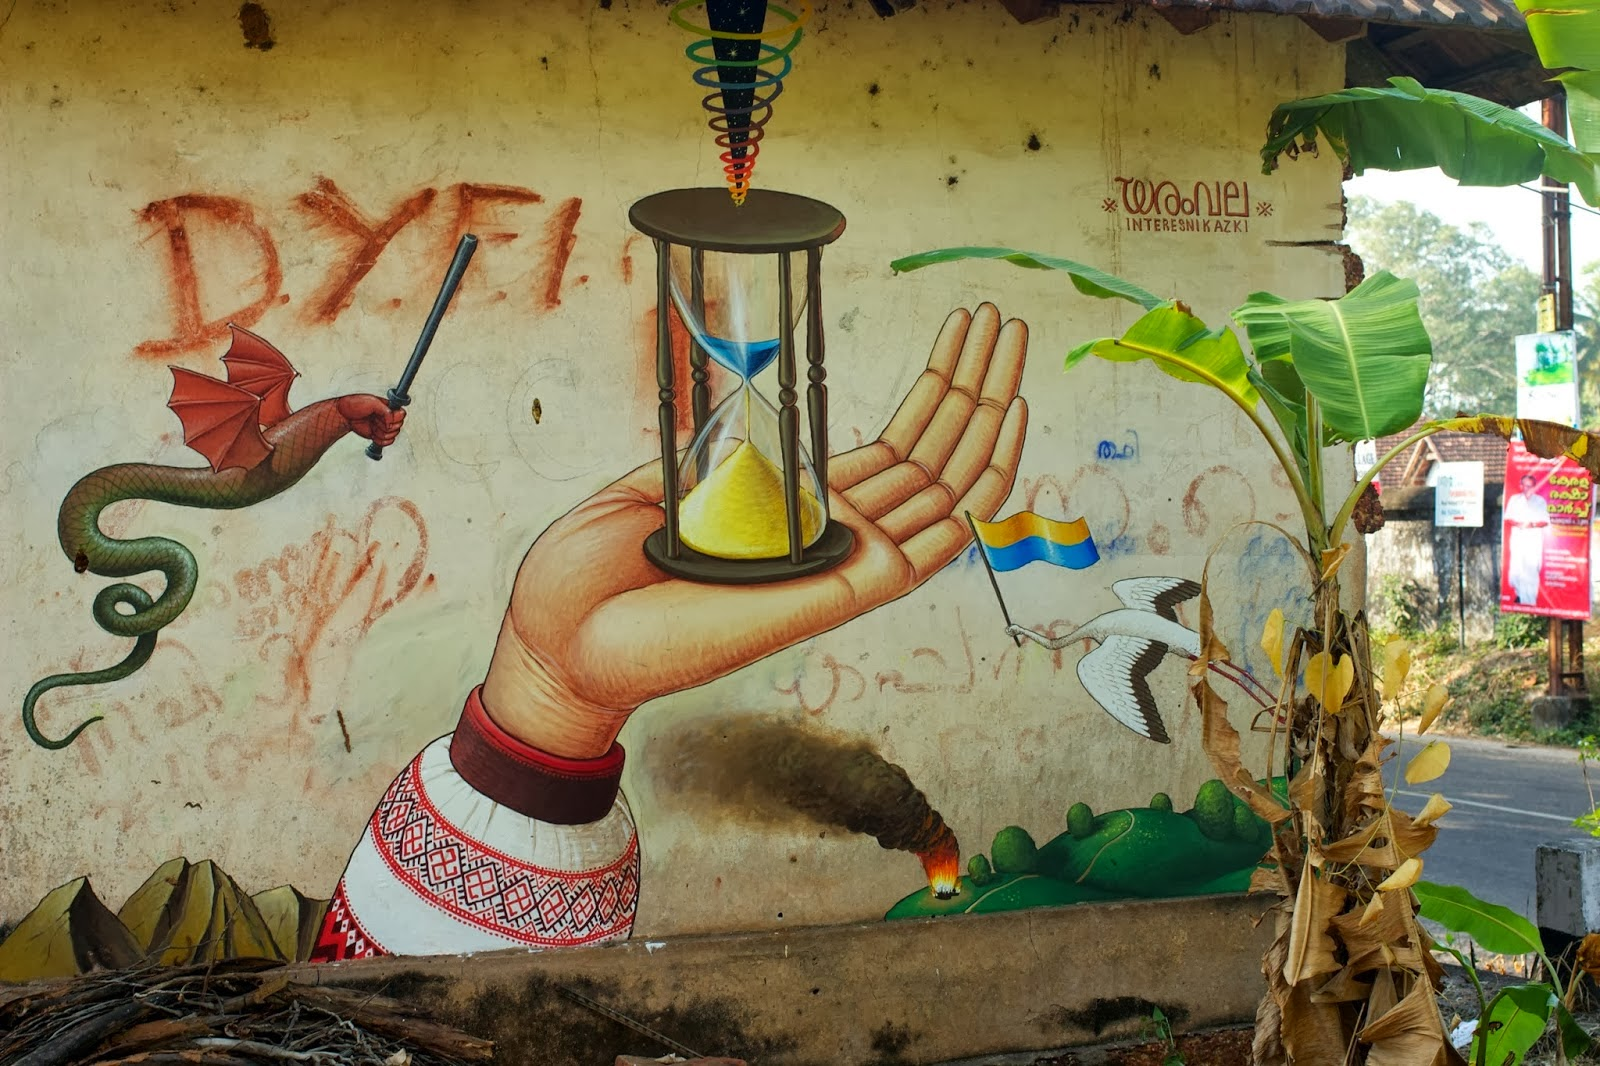 """Time For Change"" a new mural by Ukrainian artist WAONE from Interesni Kazki in Varkala, India."